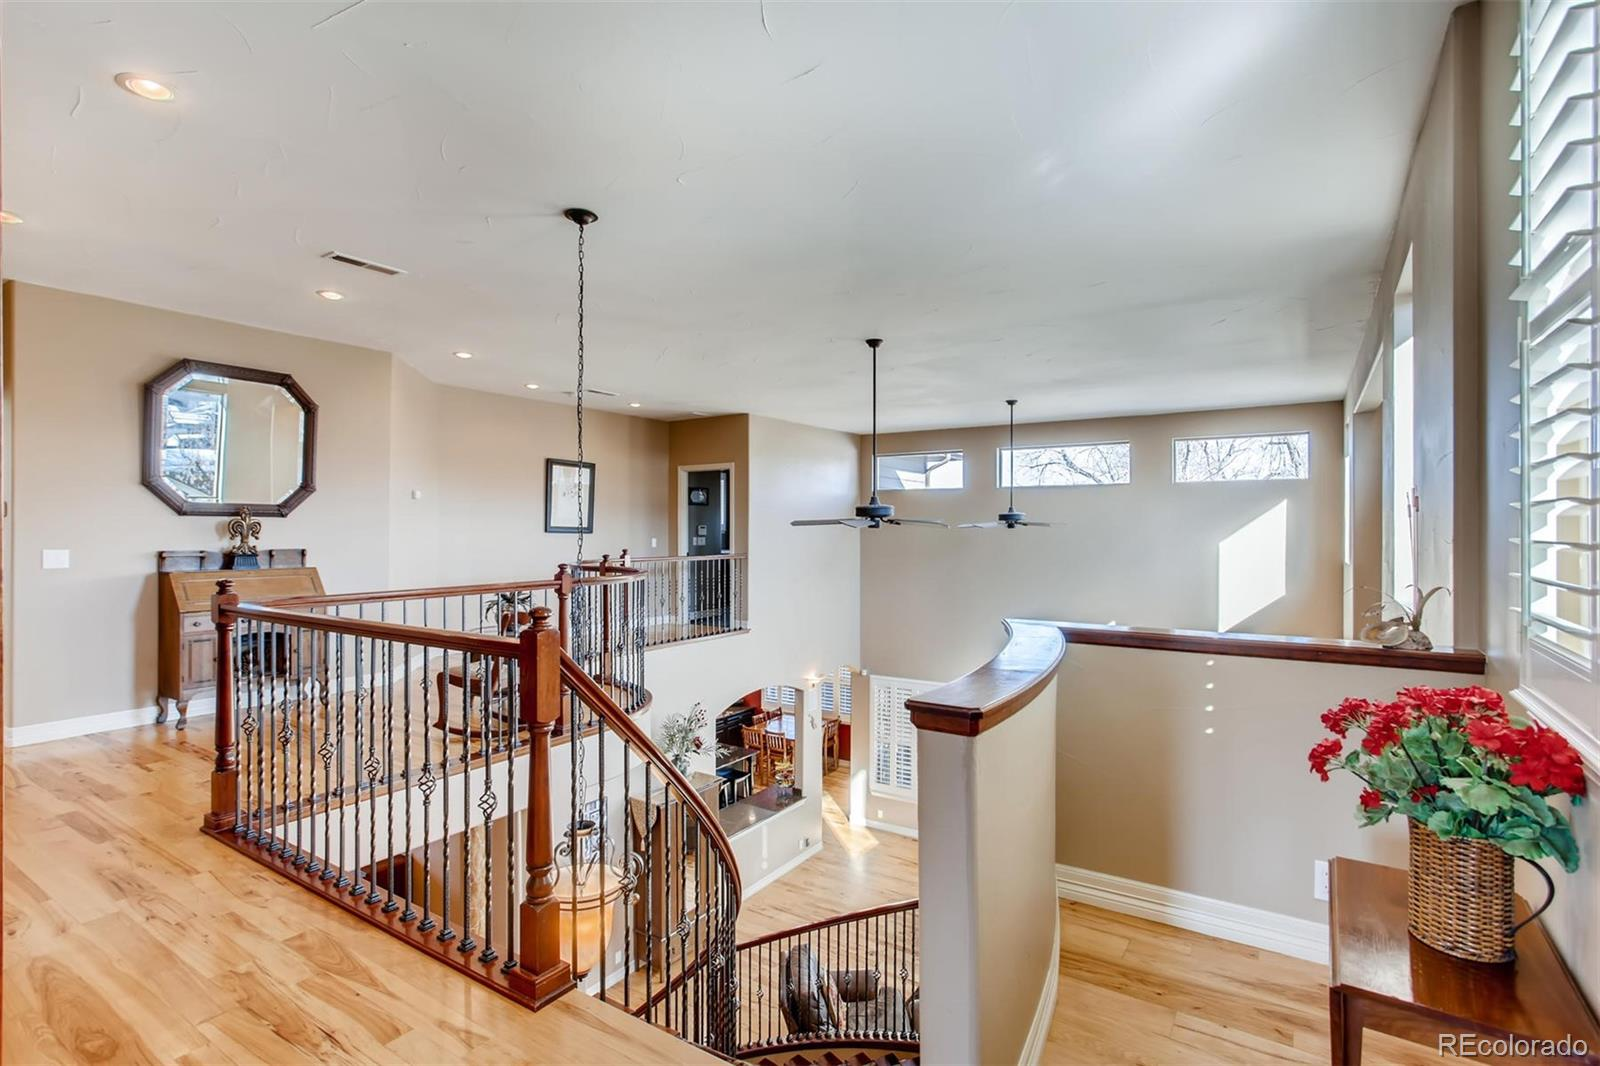 MLS# 8433922 - 11 - 3290 S Corona Street, Englewood, CO 80113